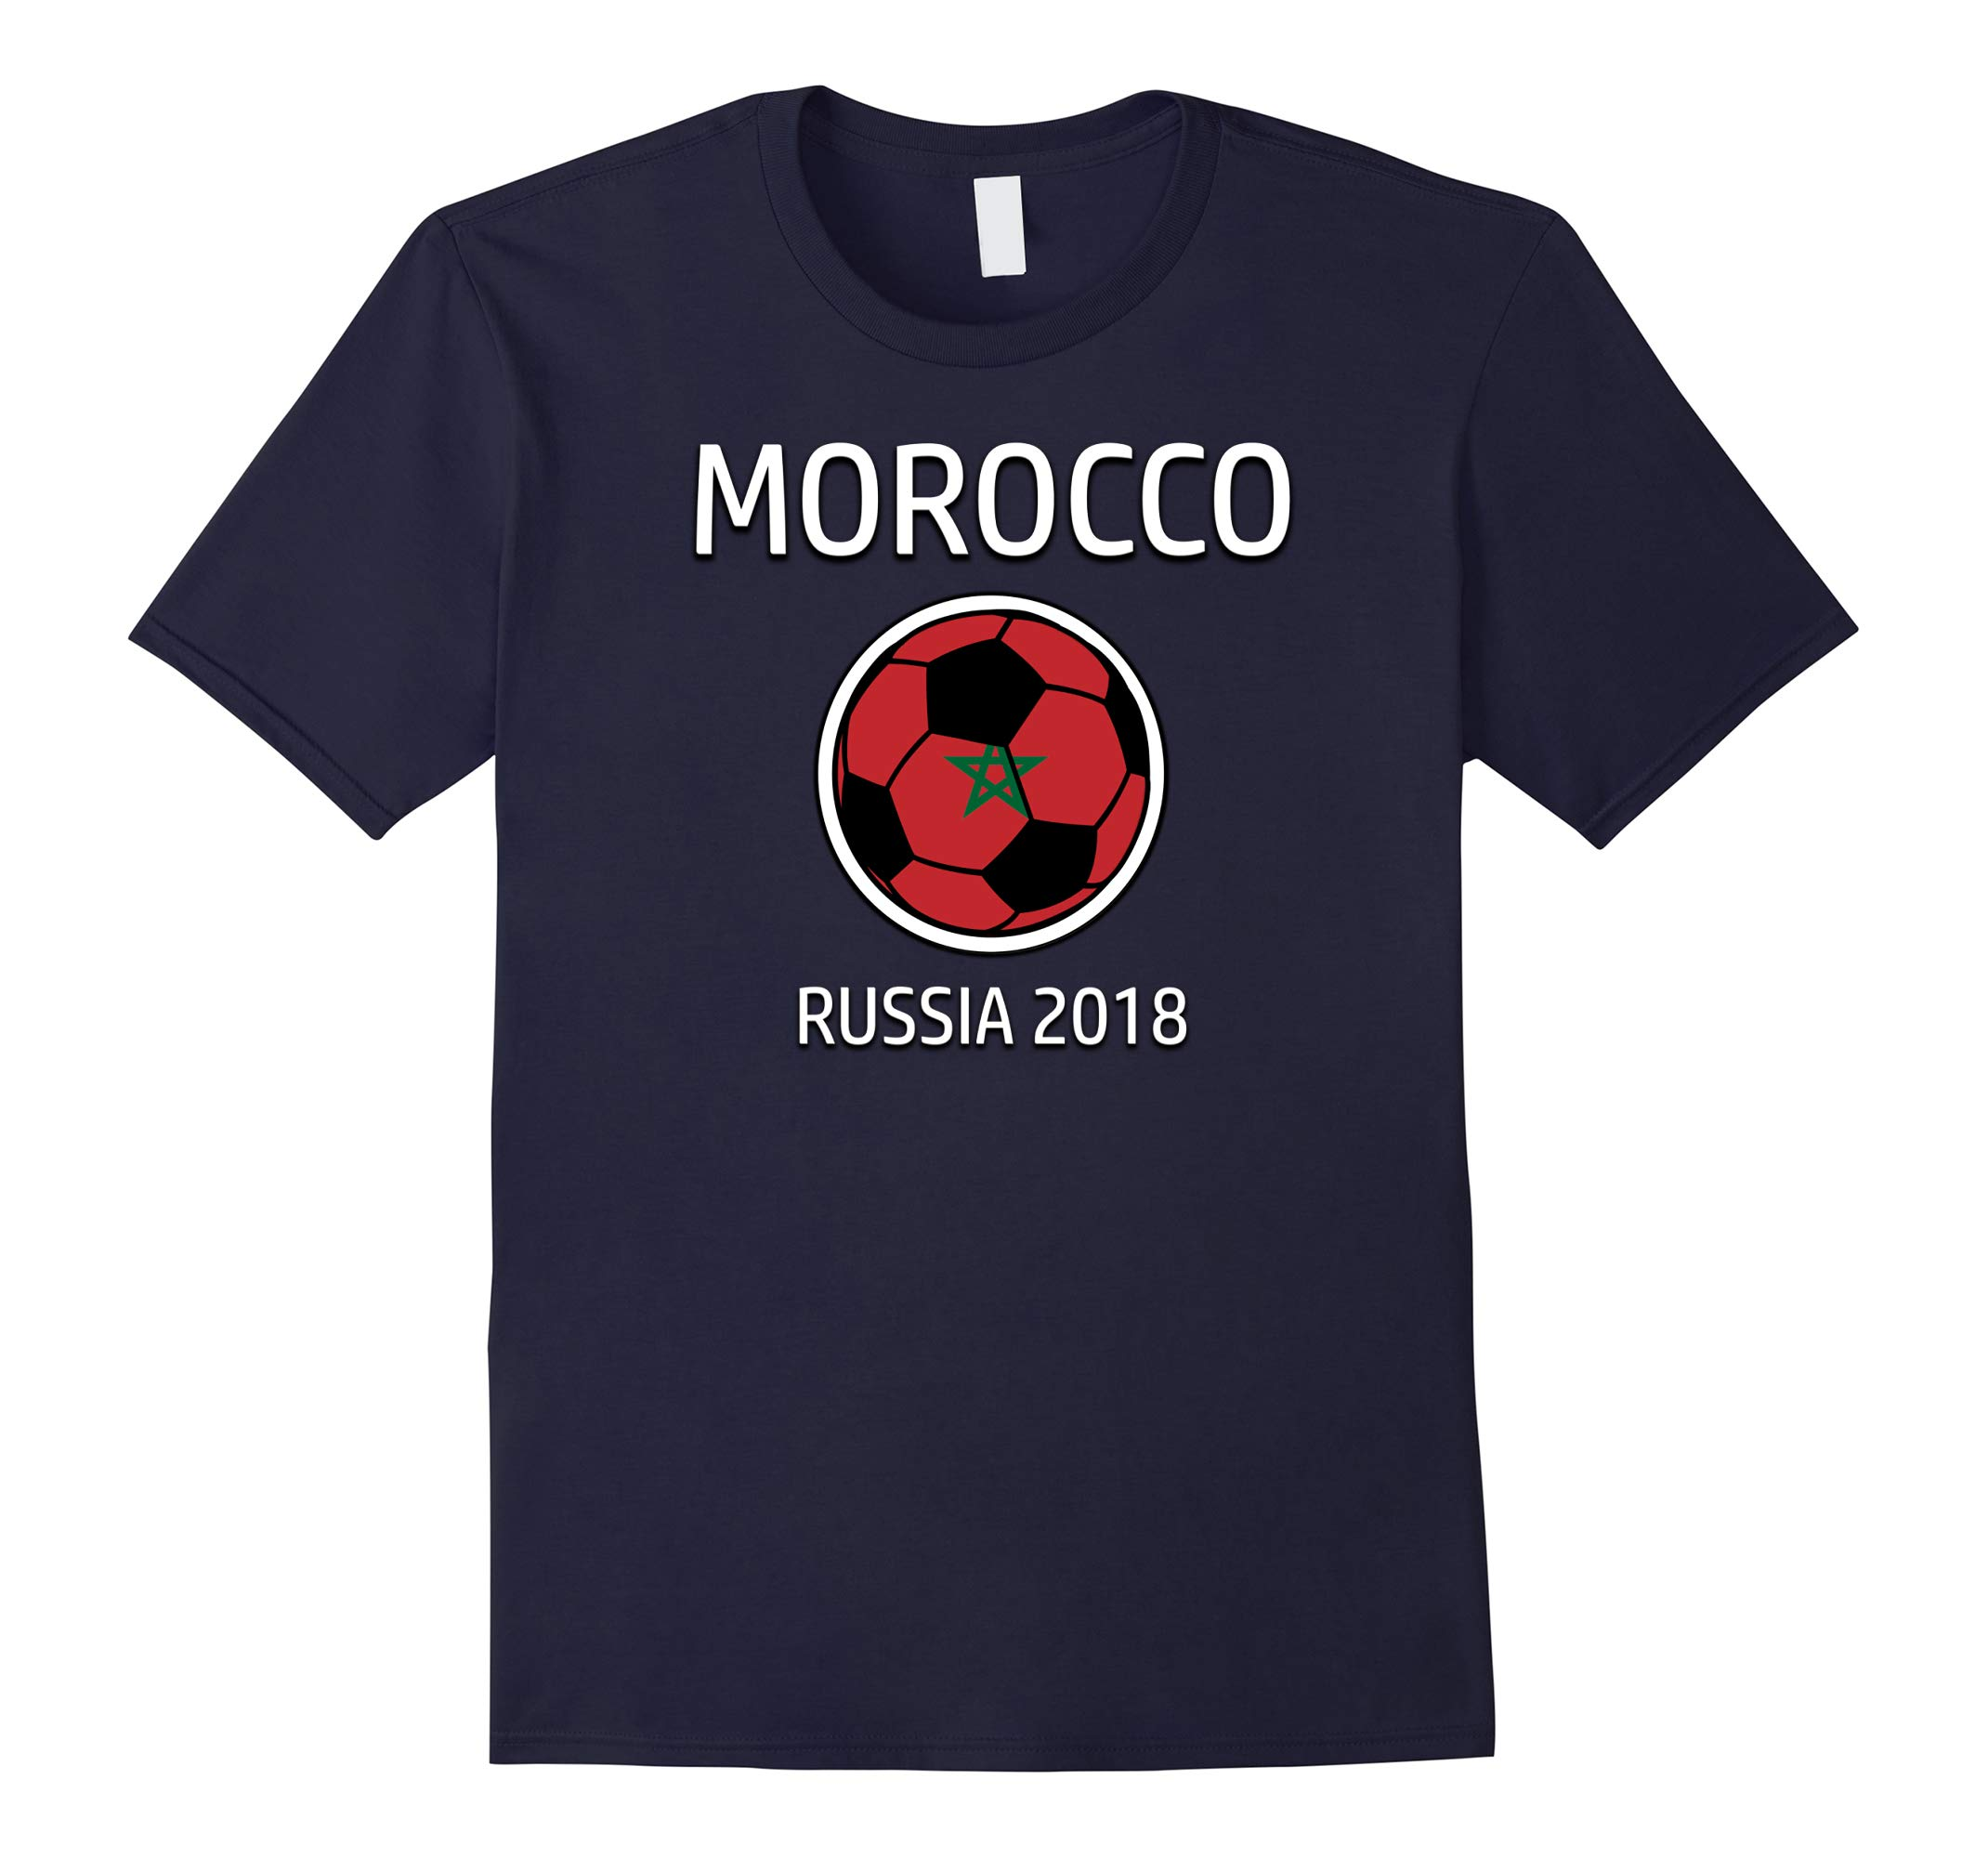 Morocco Soccer Team Russia 2018 T Shirt Football Fan-RT